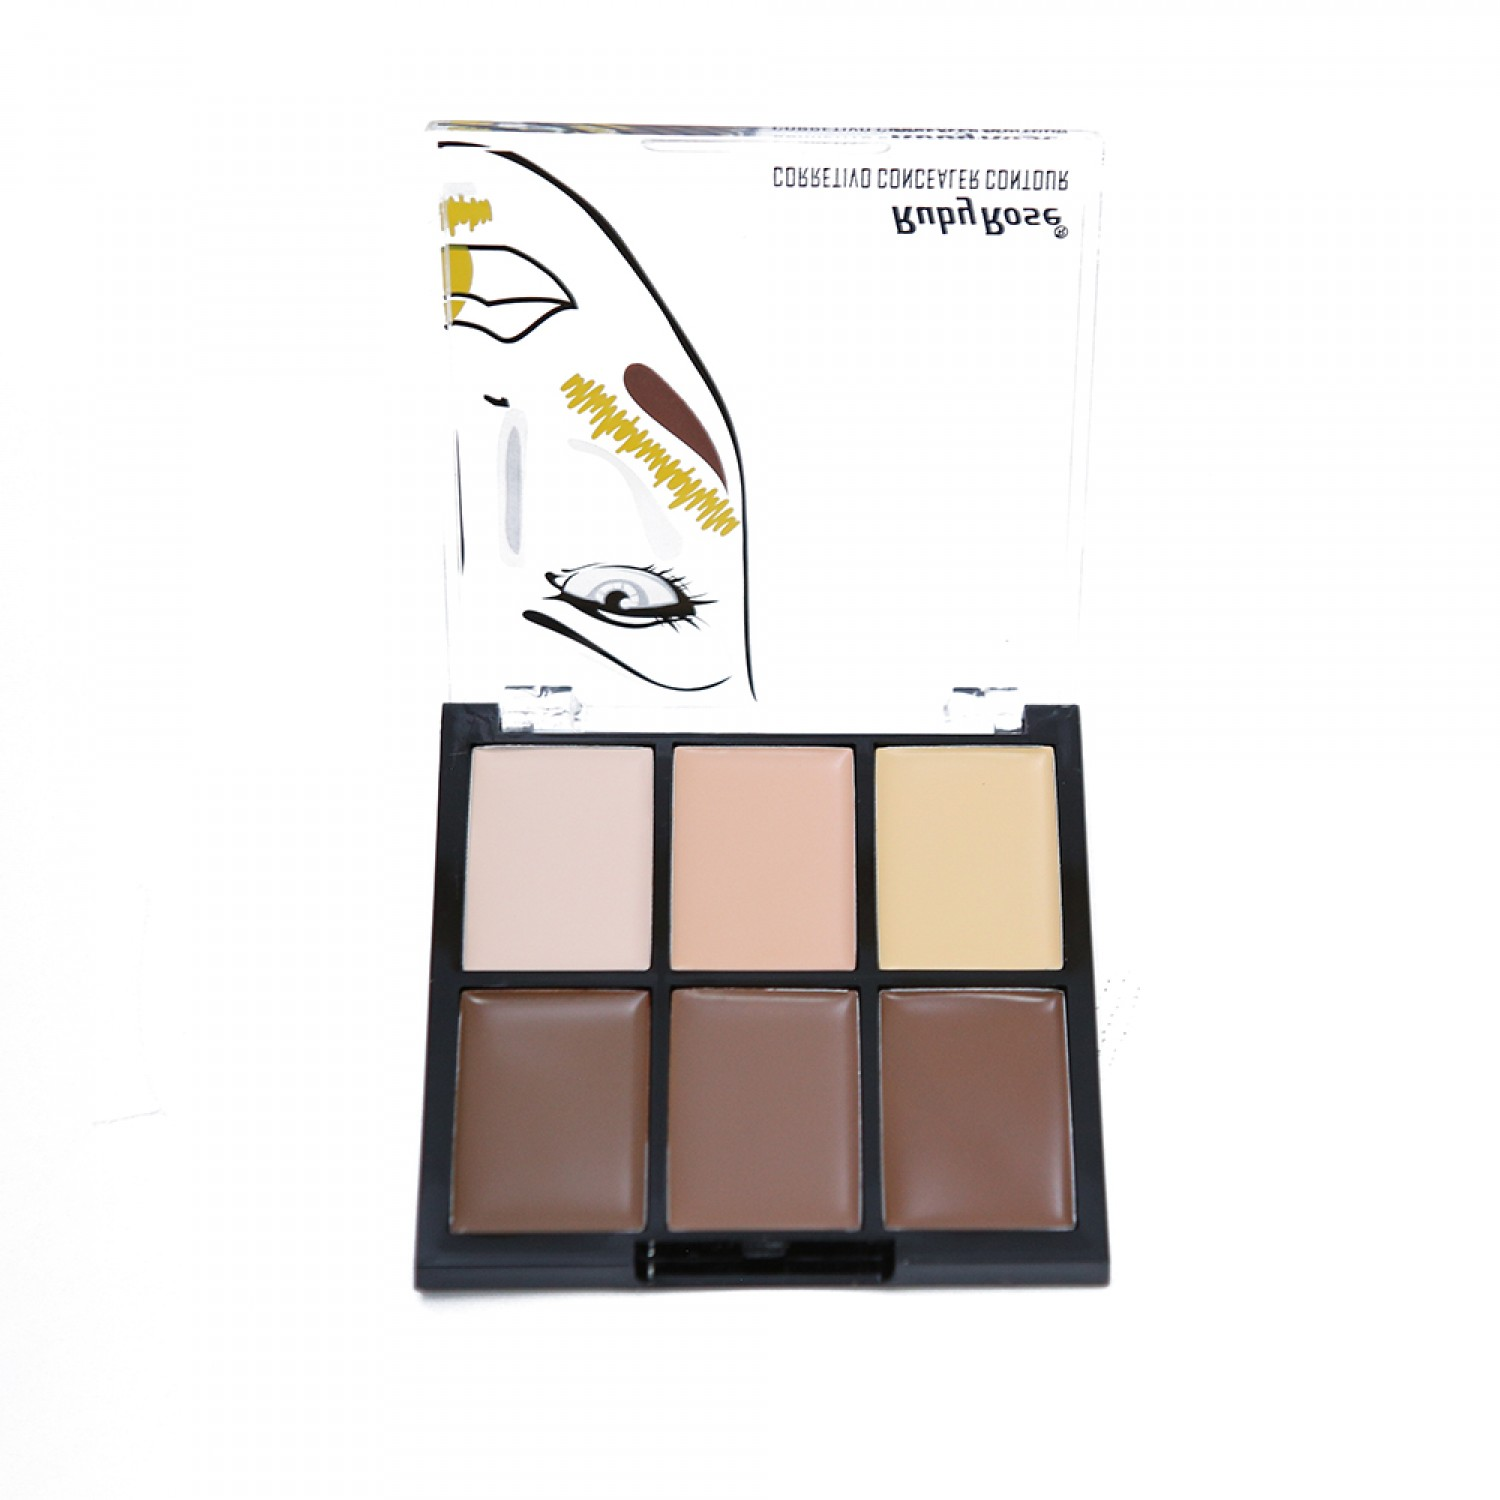 Corretivo Concealer Contour 6 cores Ruby Rose - Light